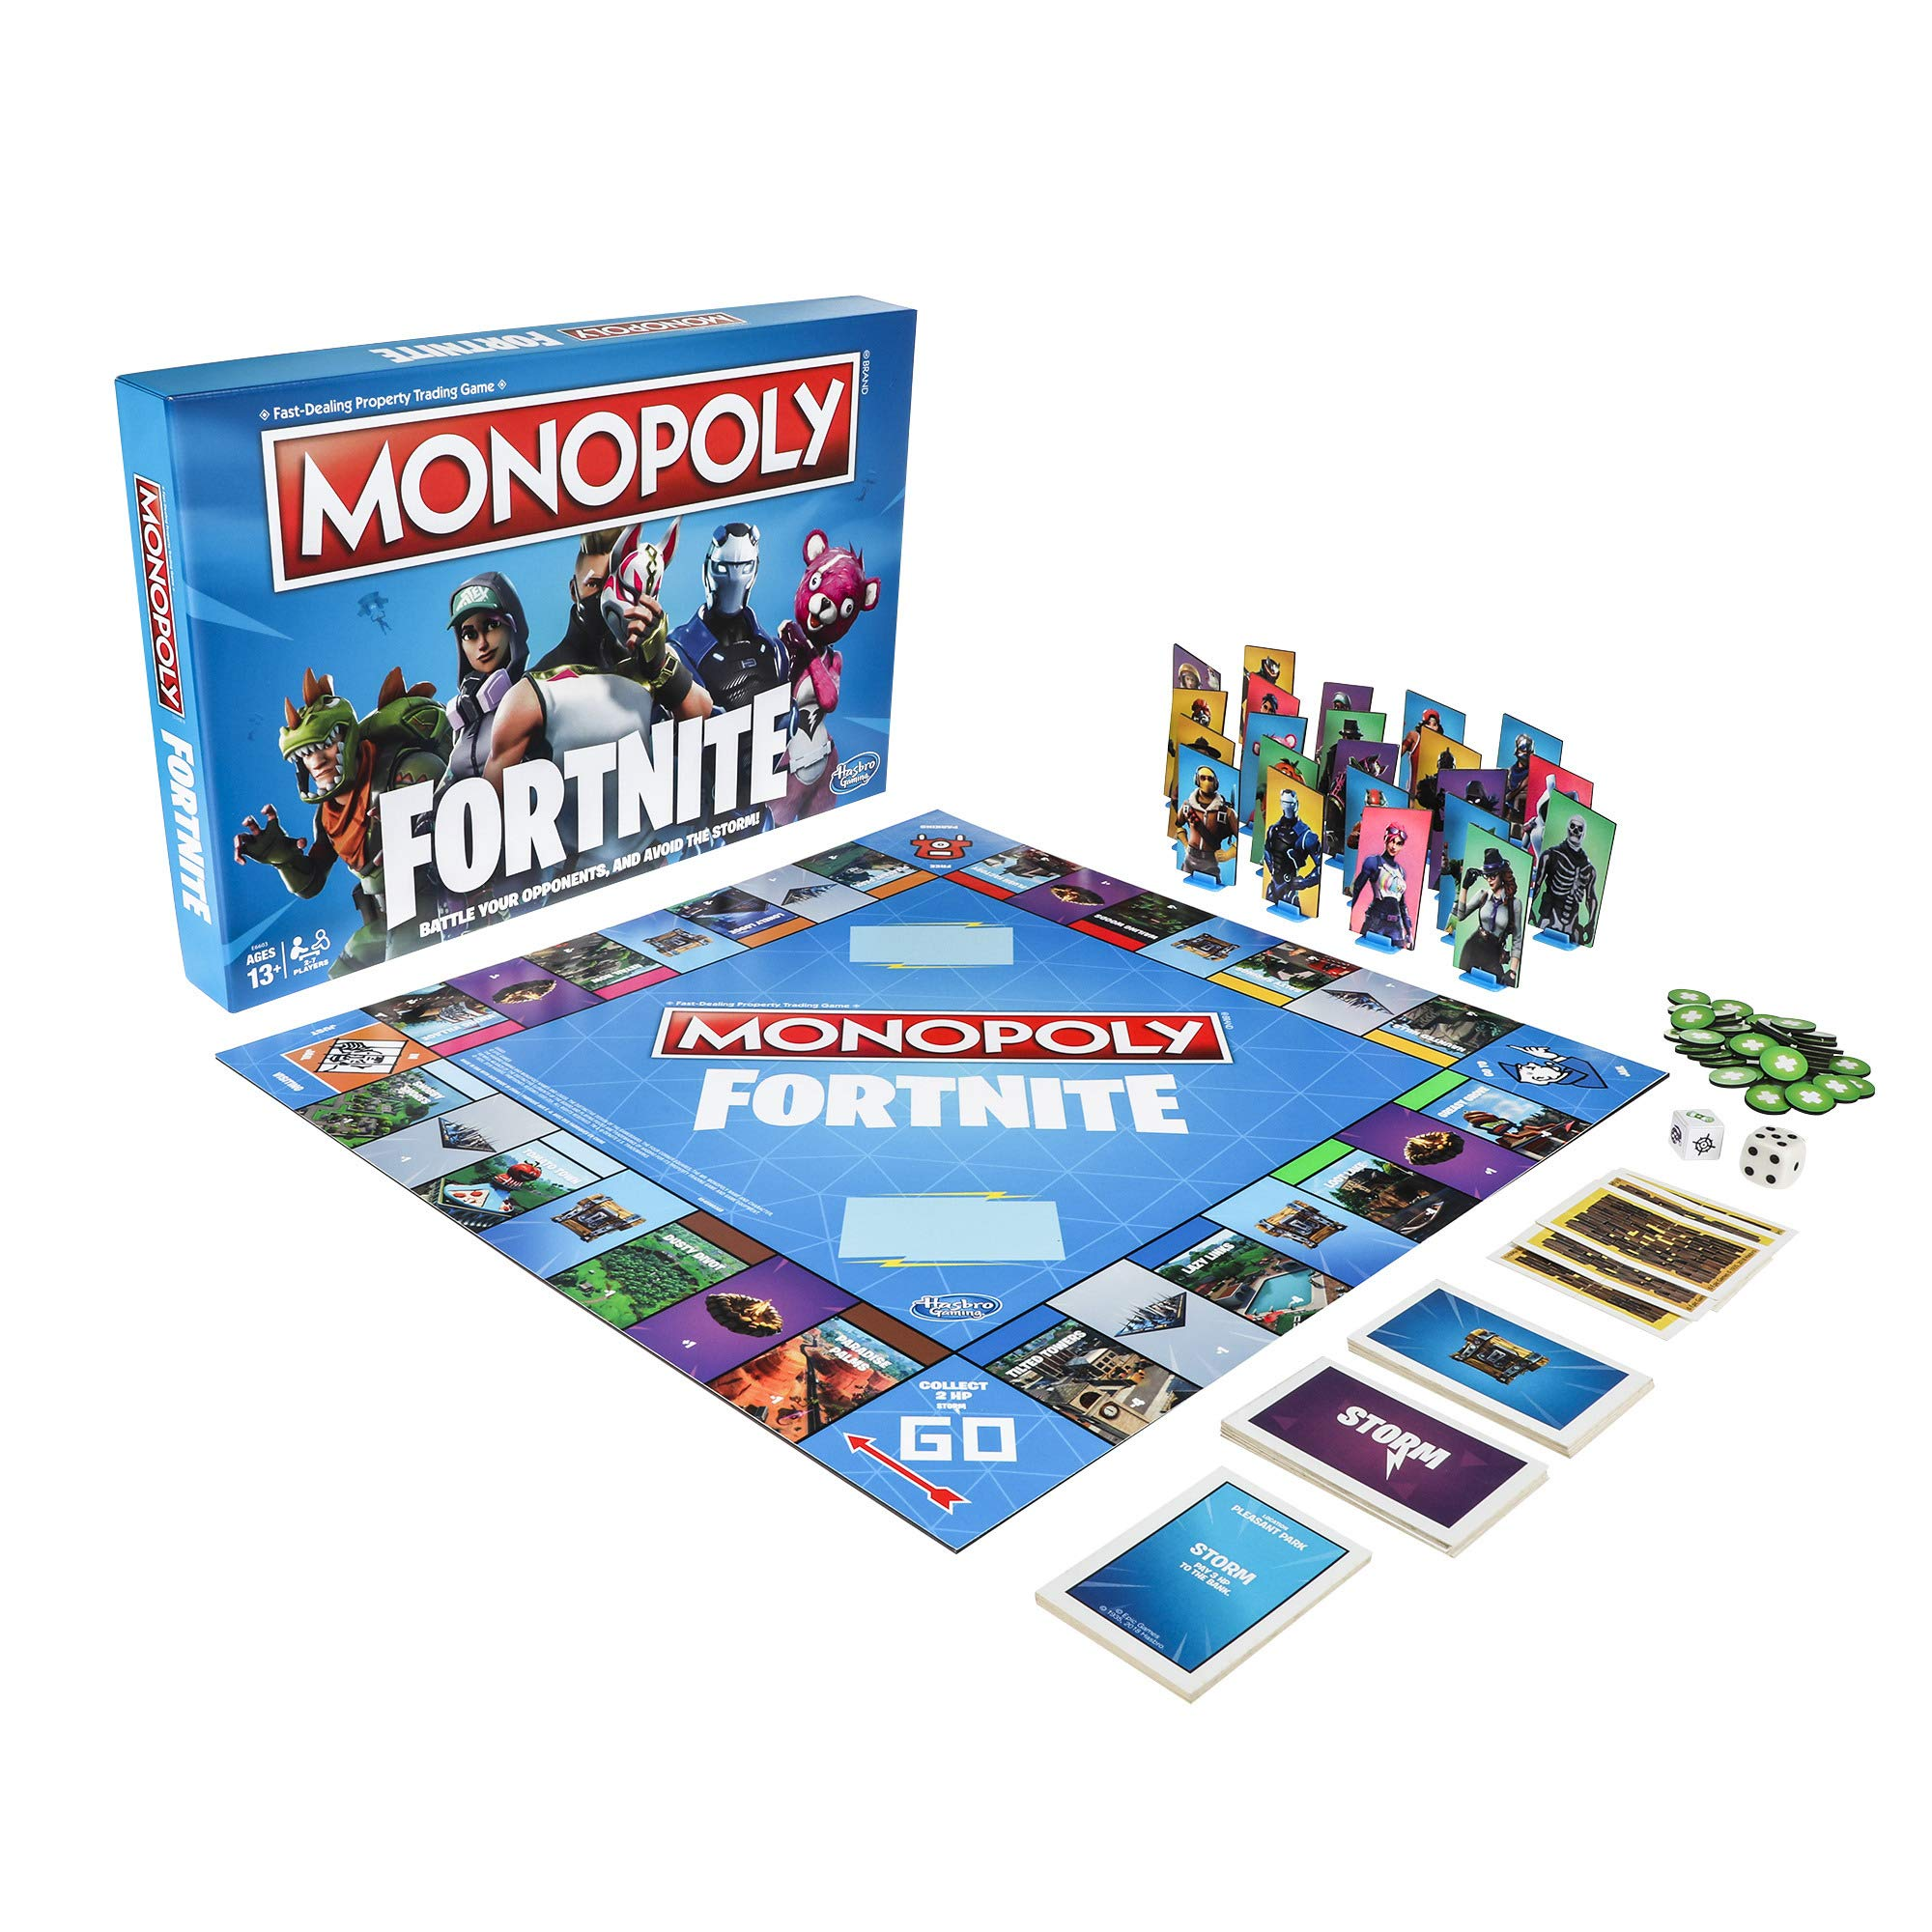 FORTNITE MONOPOLY: Amazon.es: Libros en idiomas extranjeros